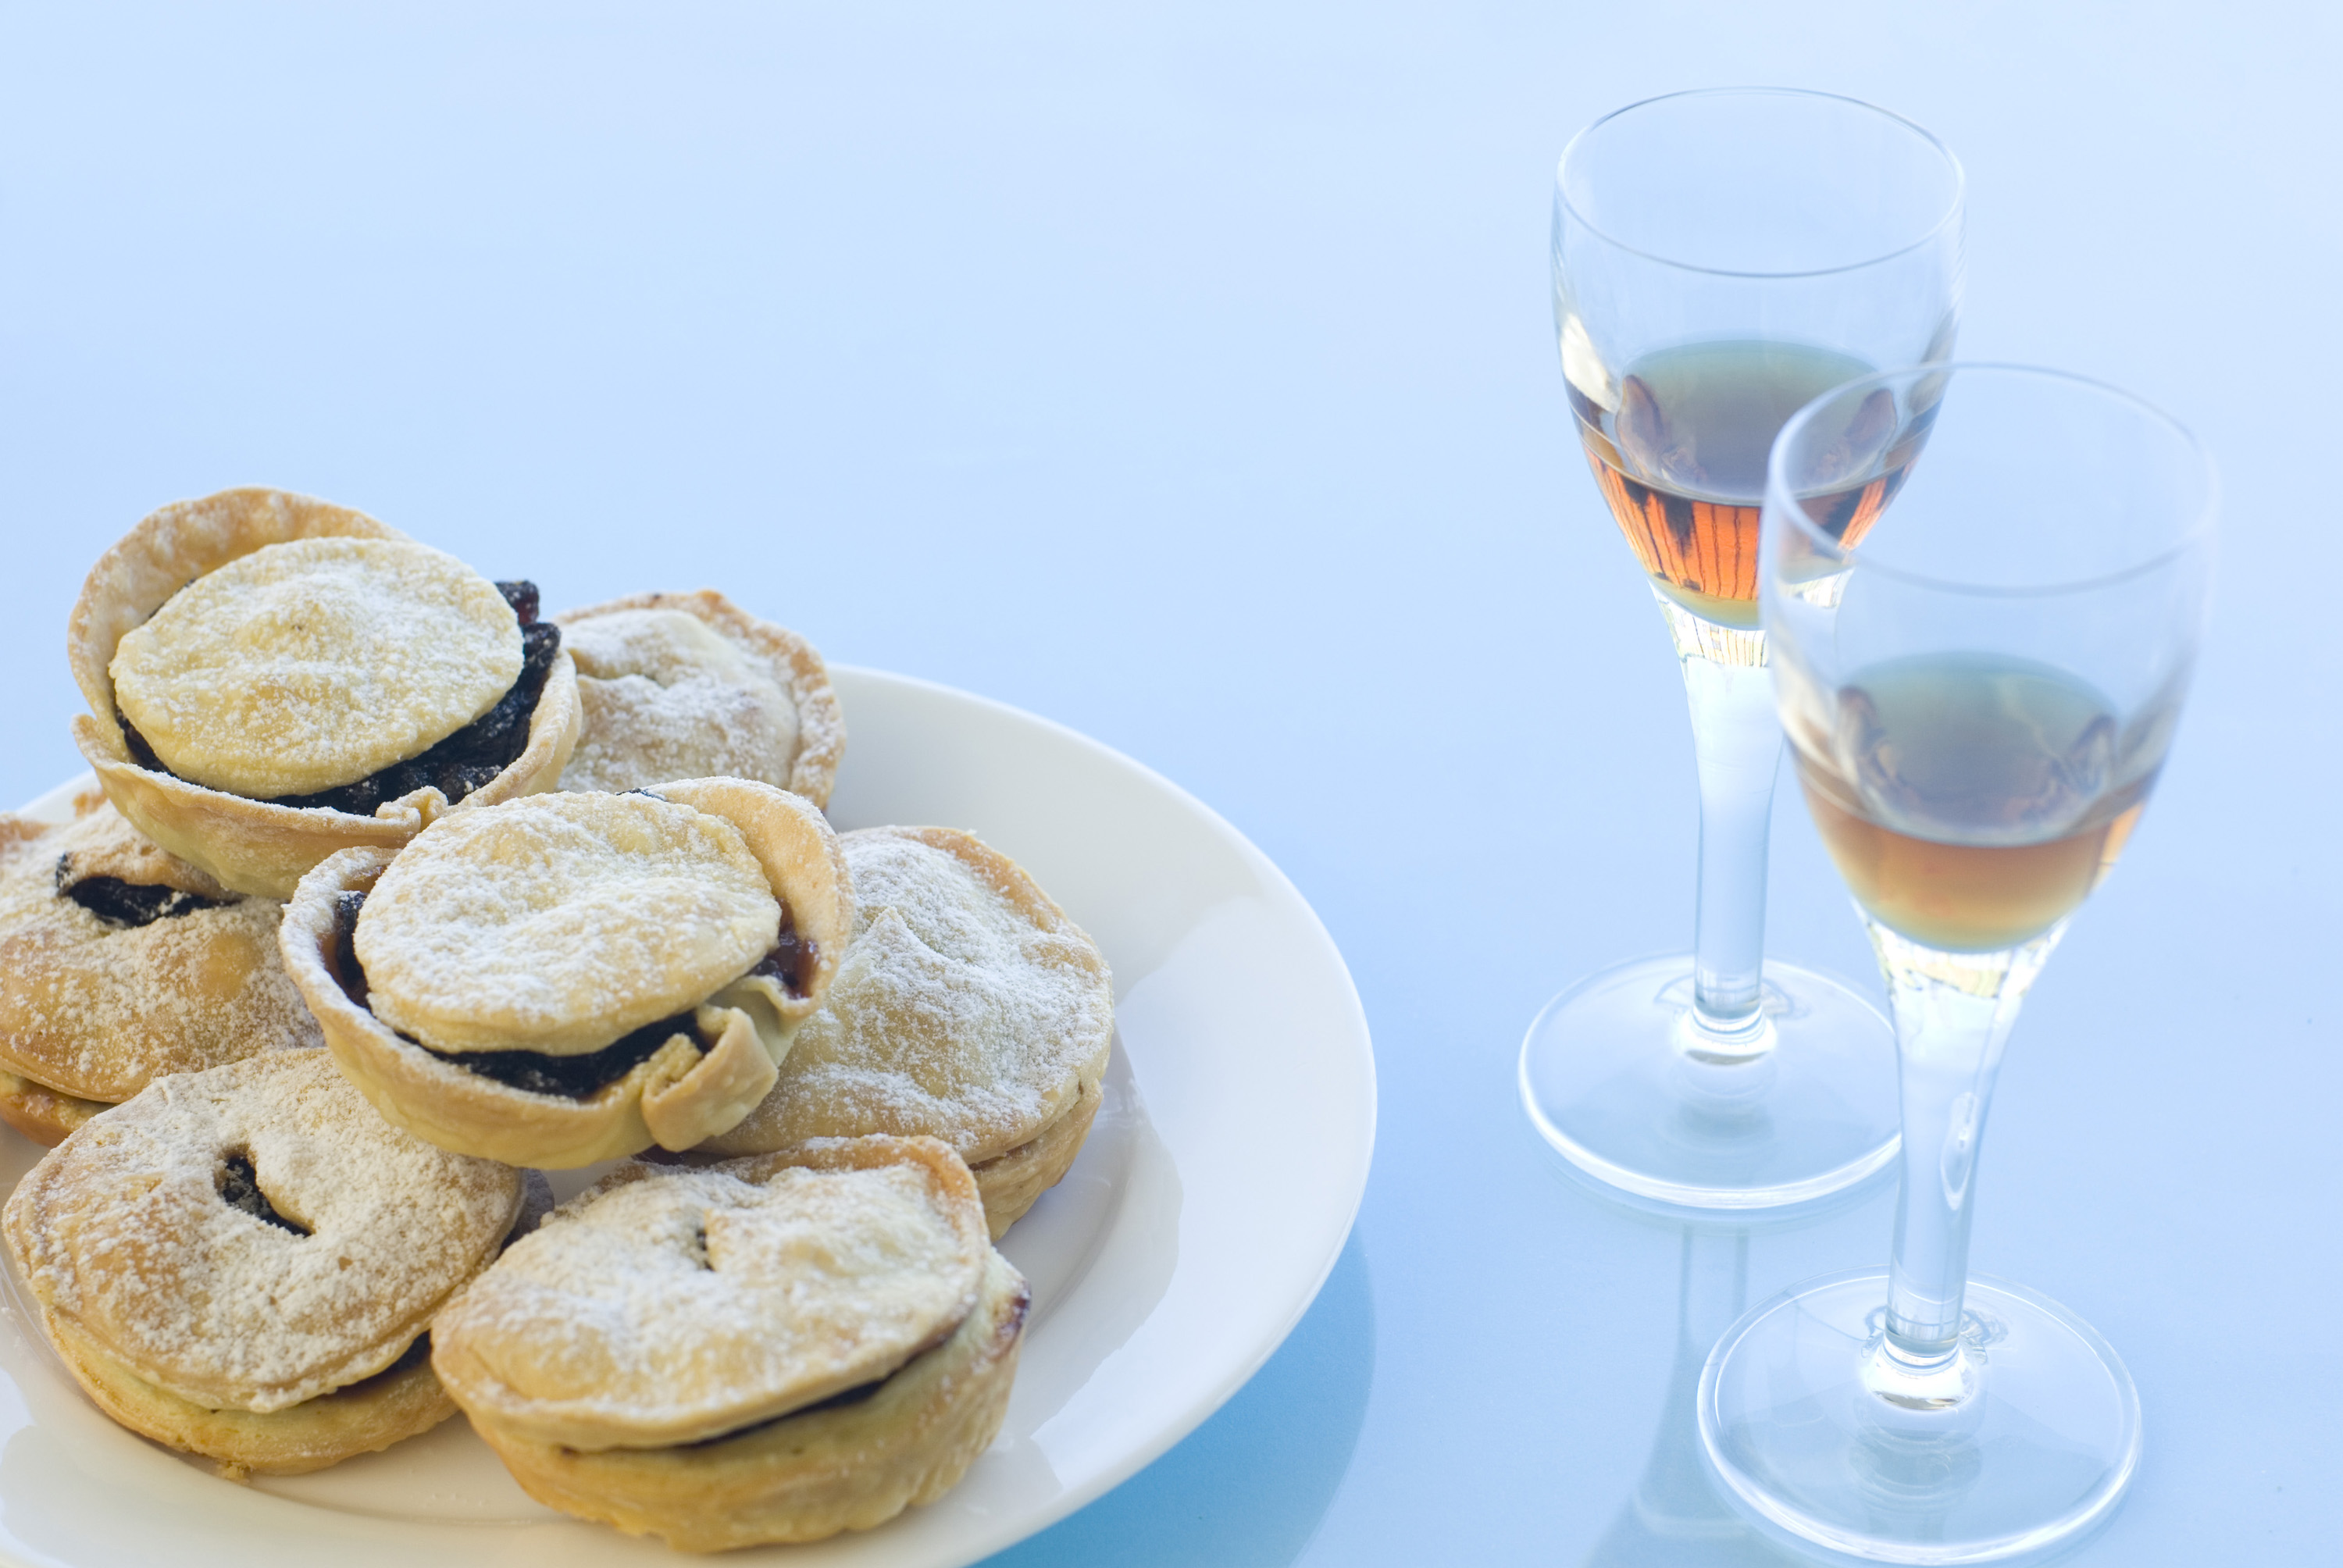 a plate of christmas mince pies and glasses of sherry - traditional british christmas treat